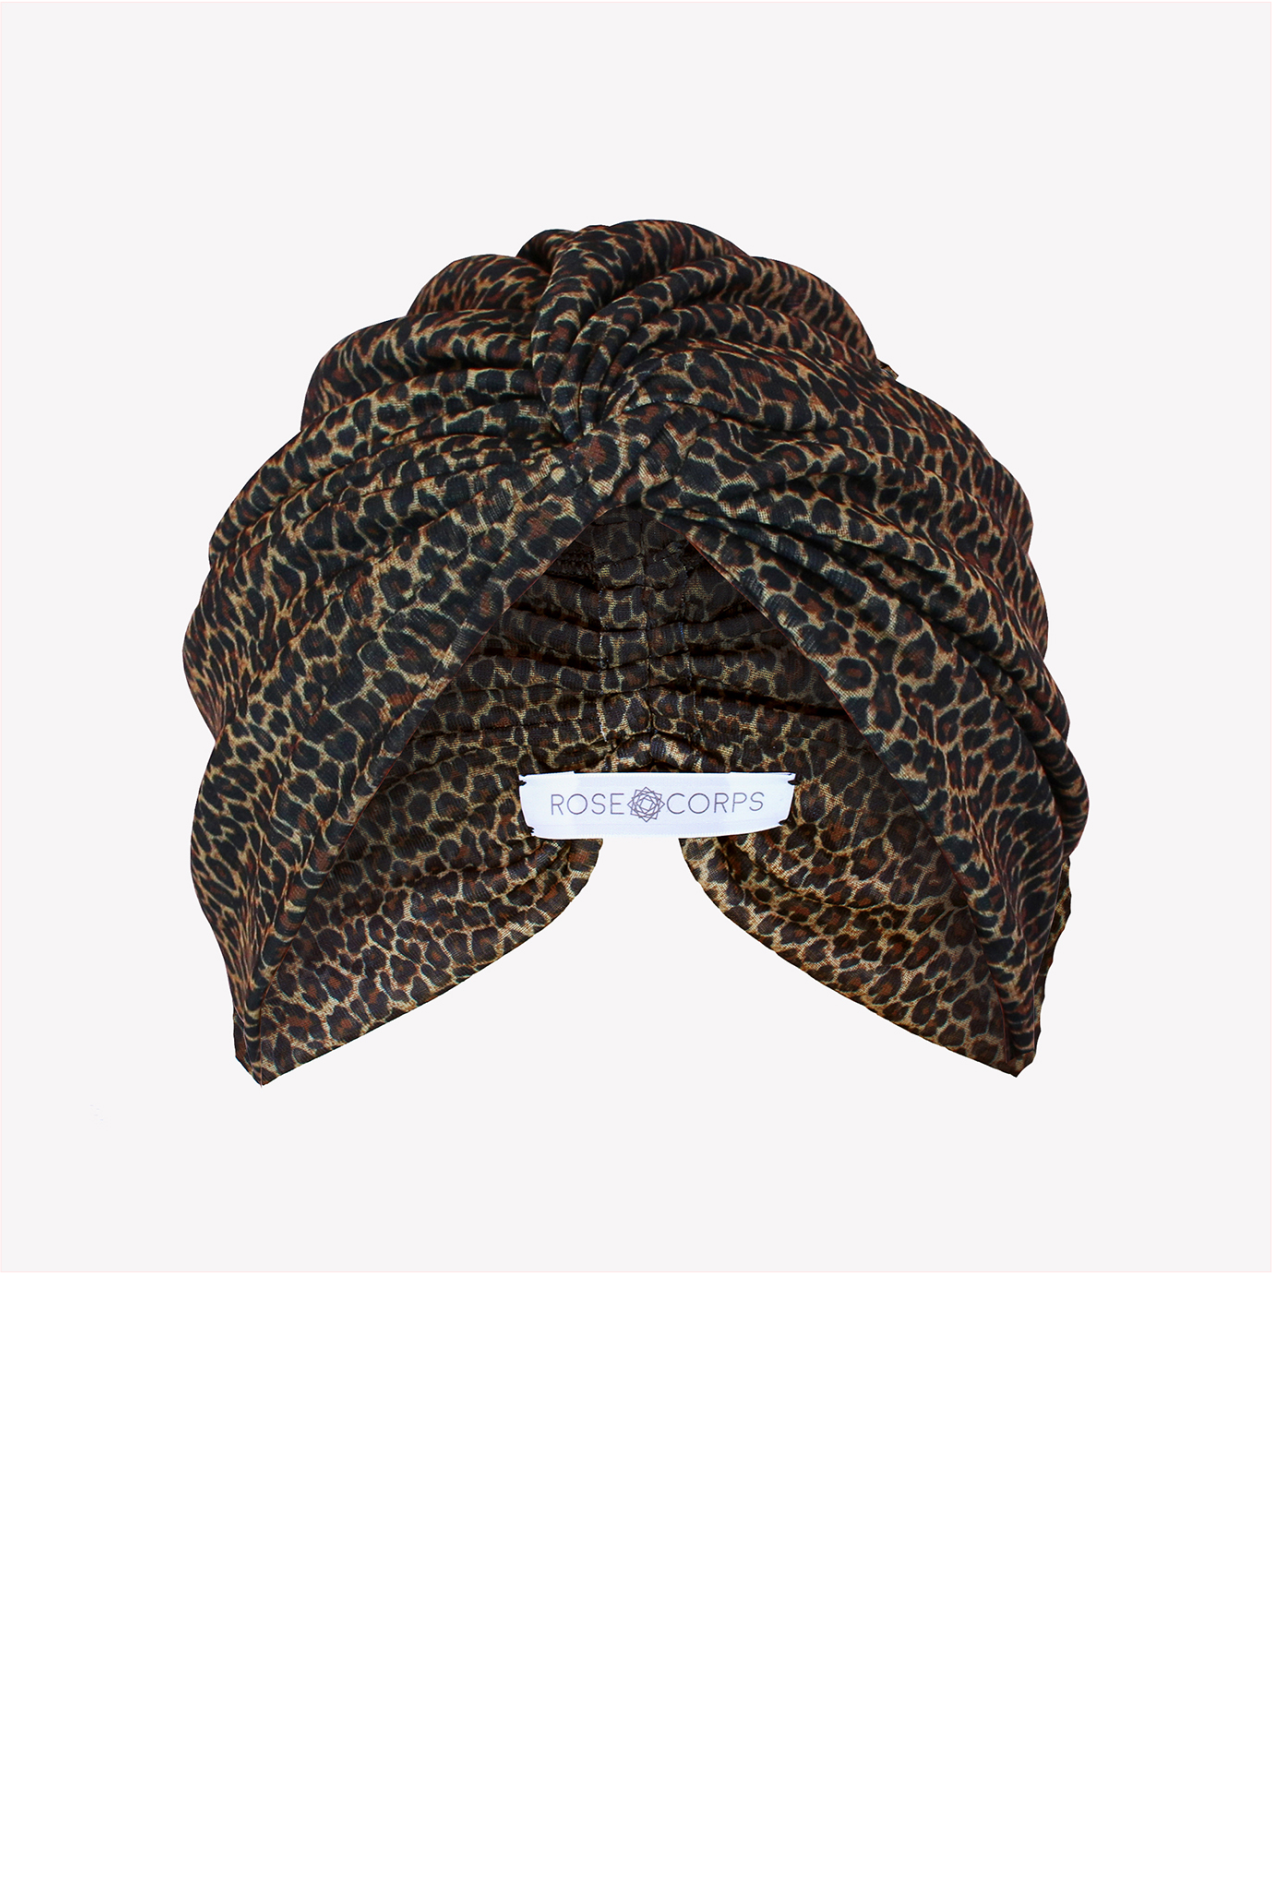 Classic leopard turban with twist